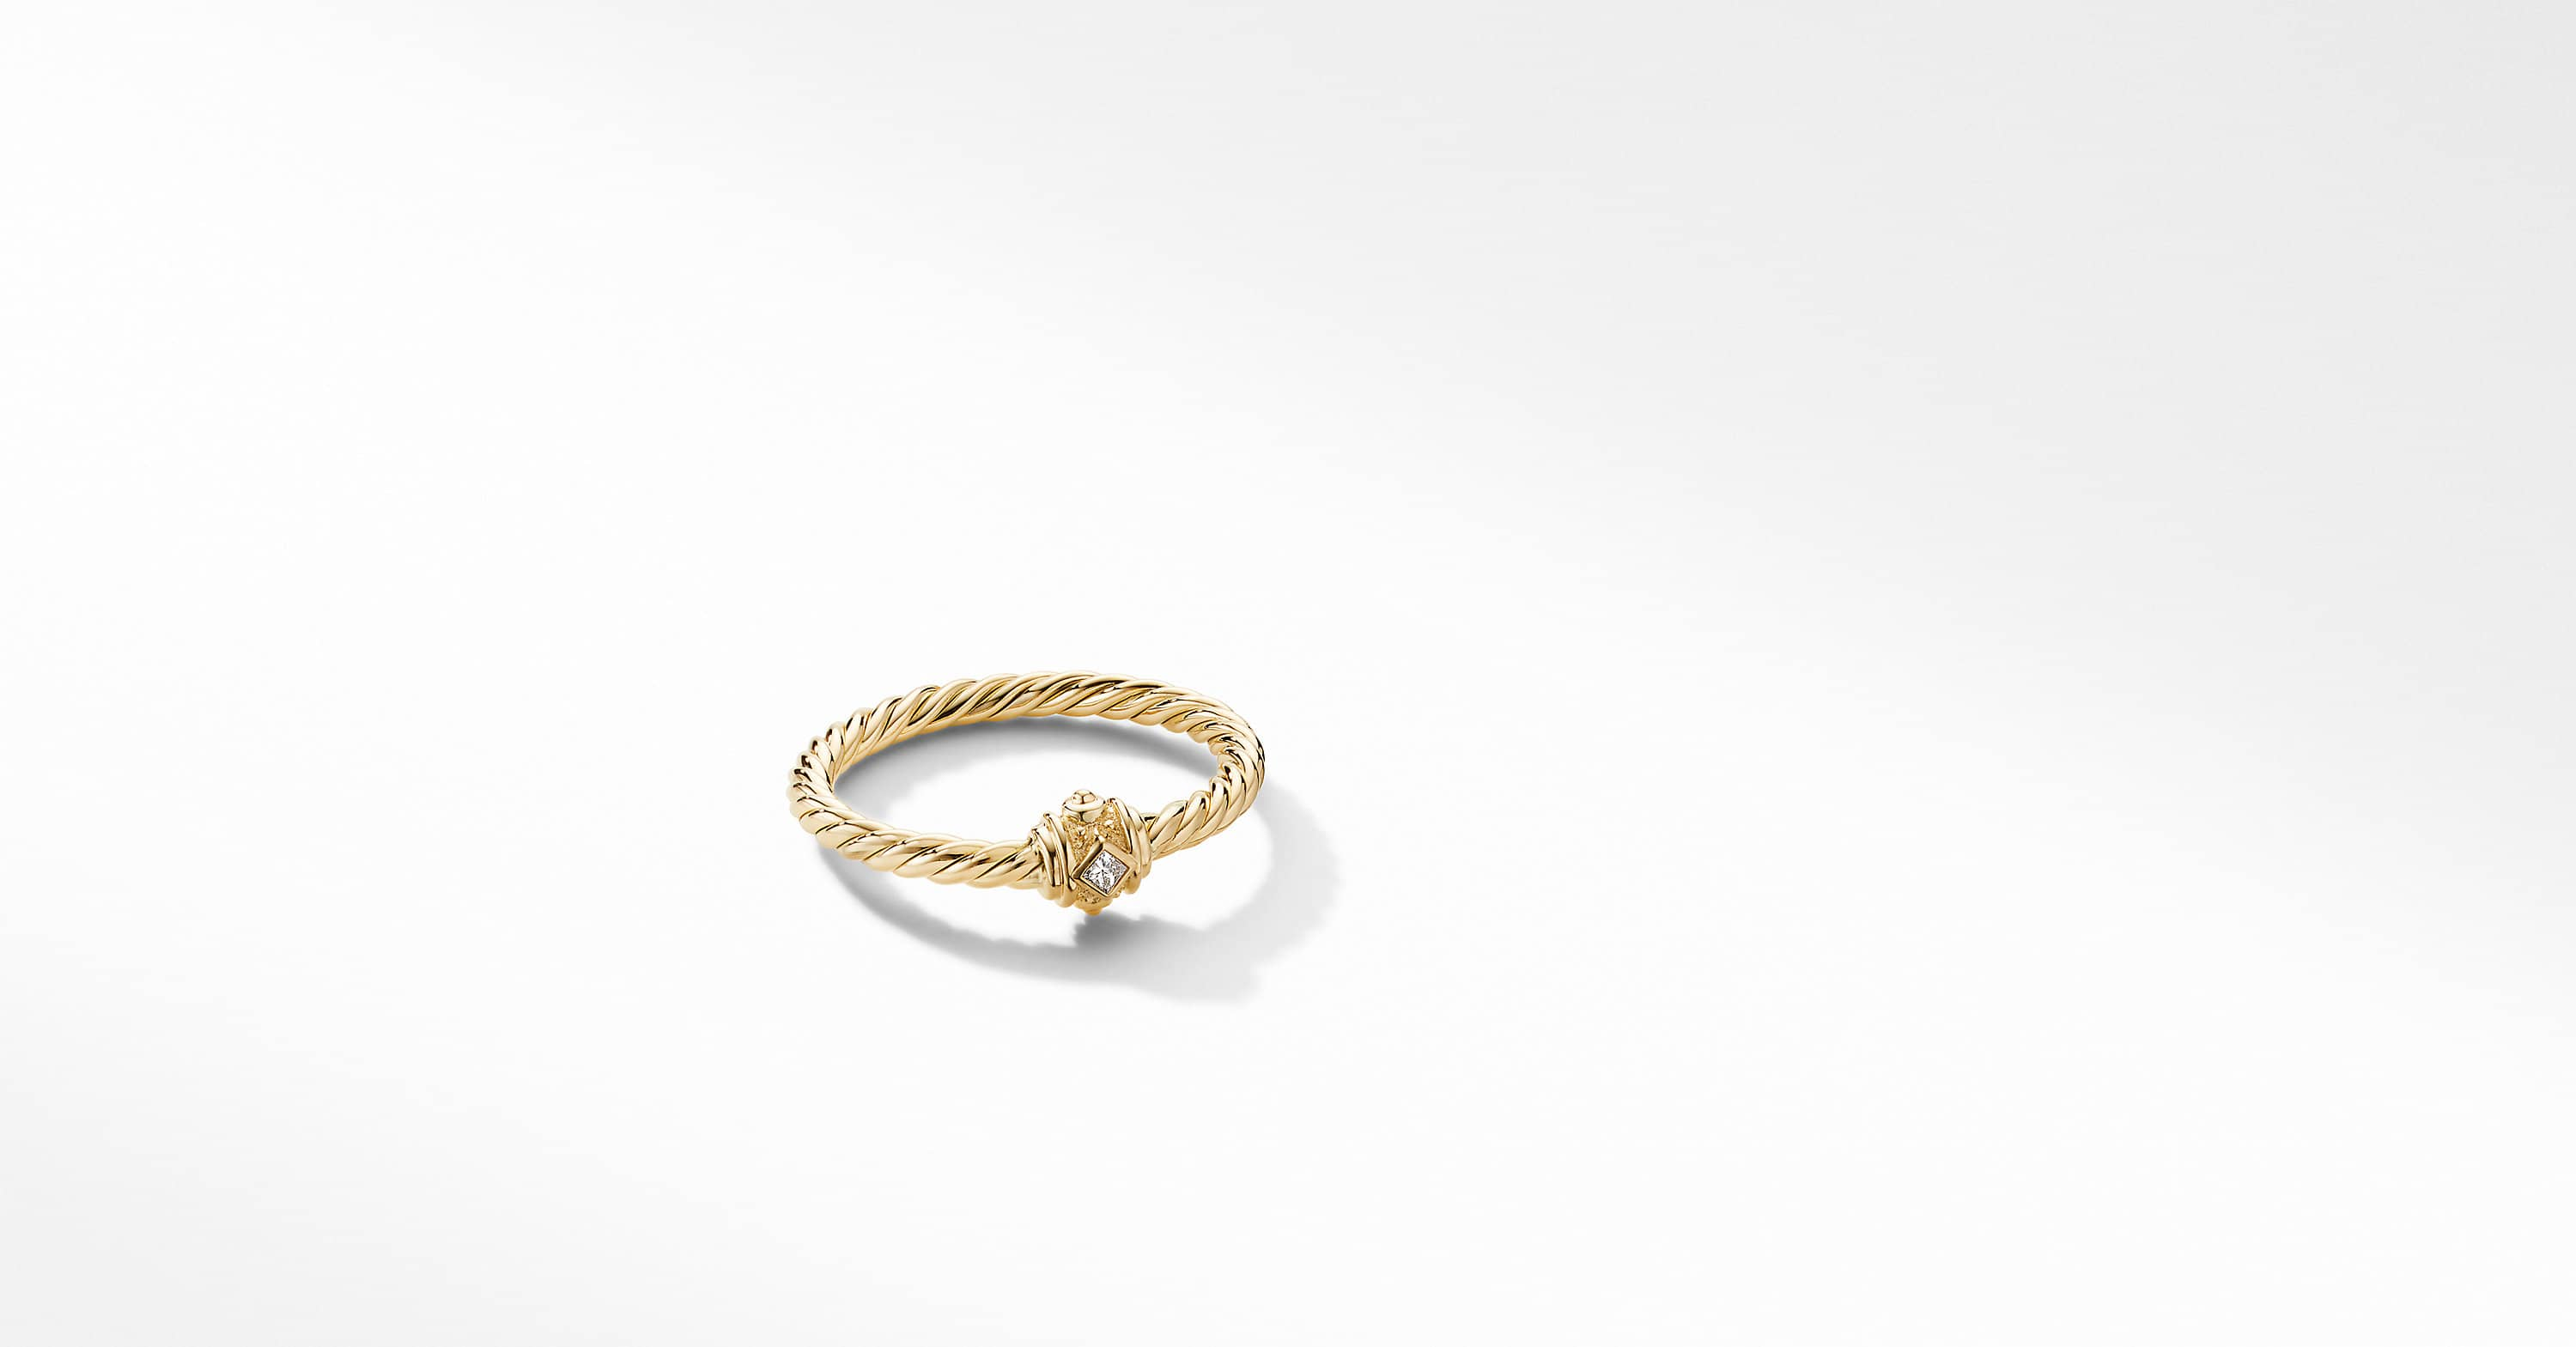 Renaissance Station Ring in 18K Yellow Gold with Diamonds